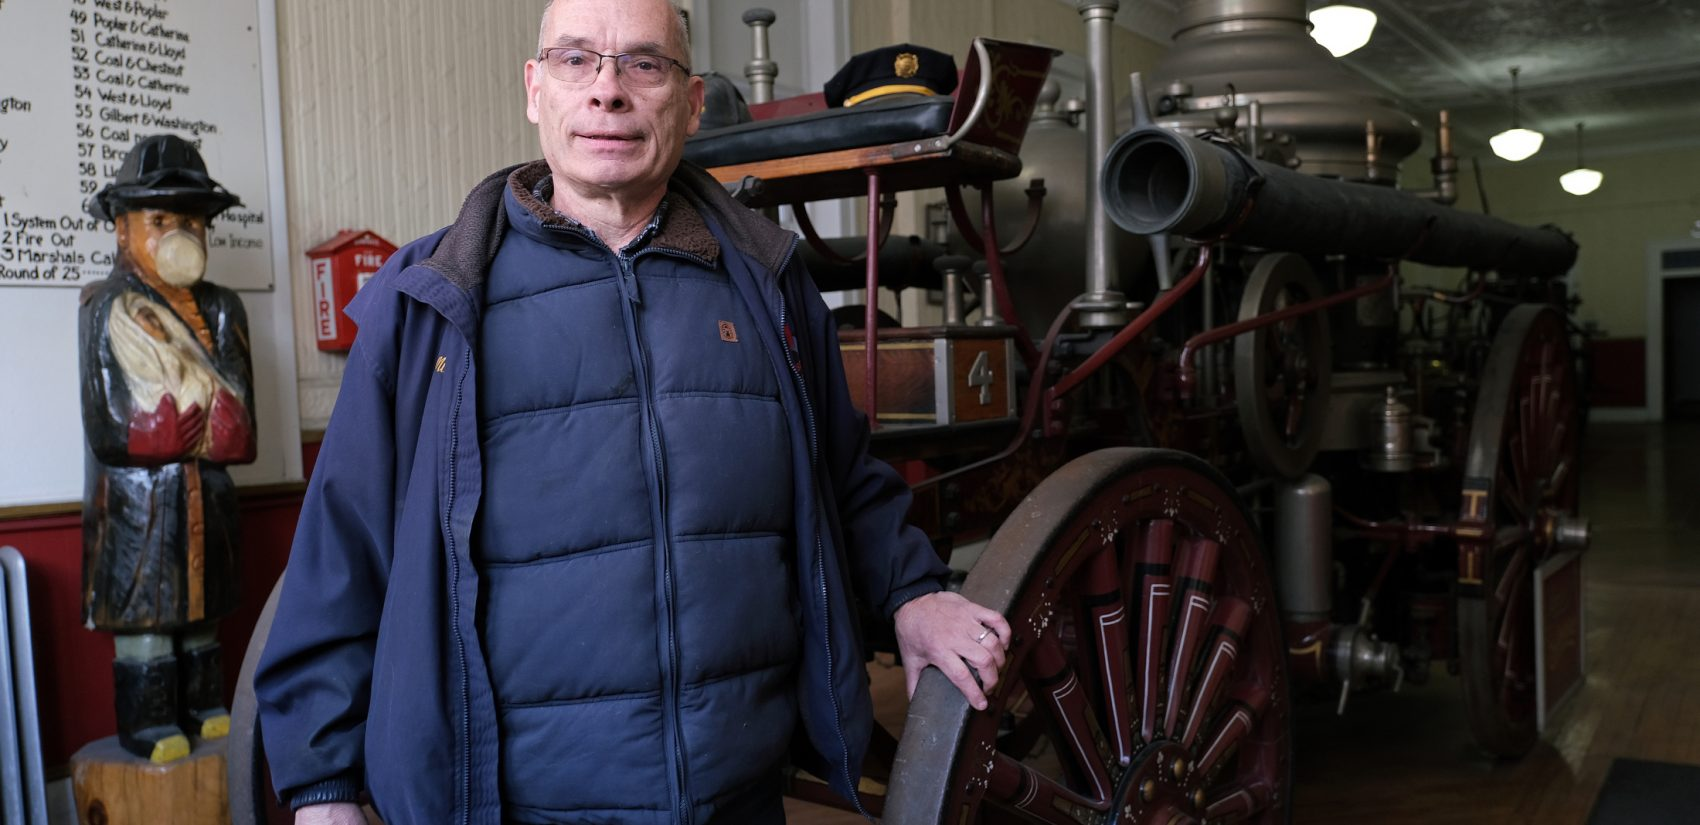 Veteran firefighter Mike Kitsock stands by a 1909 Ahrens Continental steam fire engine at the Schuylkill Historical Fire Society in Shenandoah, Pennsylvania. (Matt Smith for Keystone Crossroads)